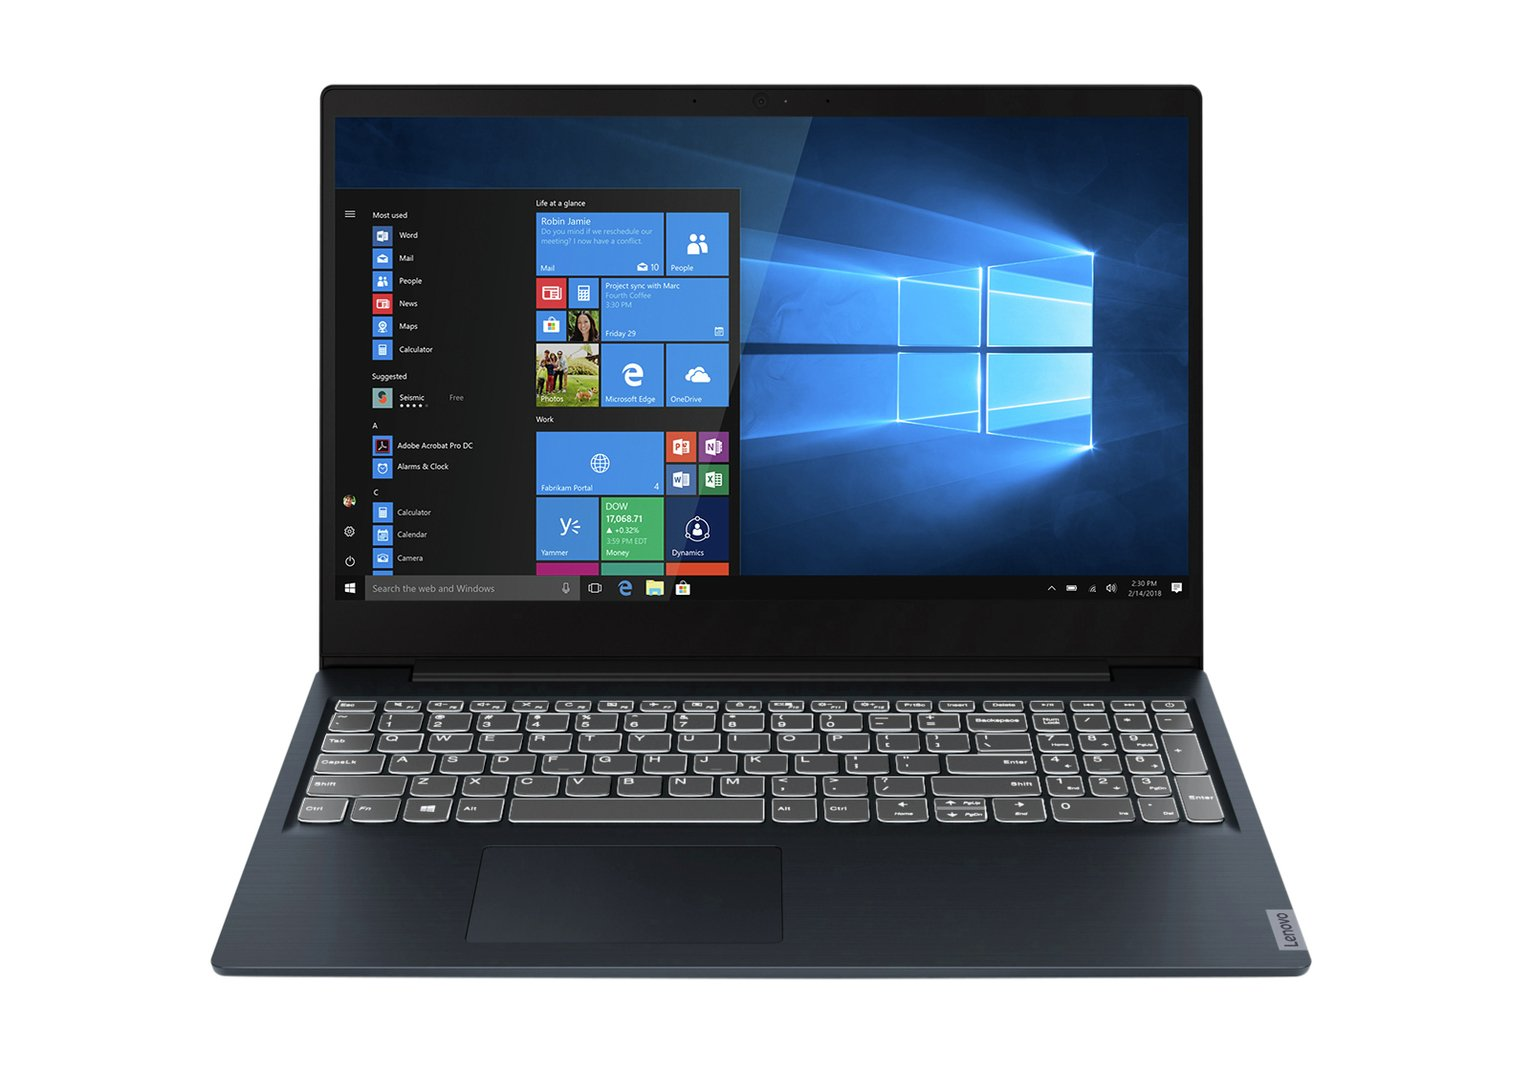 Lenovo IdeaPad S340 15.6in Ryzen3 4GB 128GB FHD Laptop -Blue